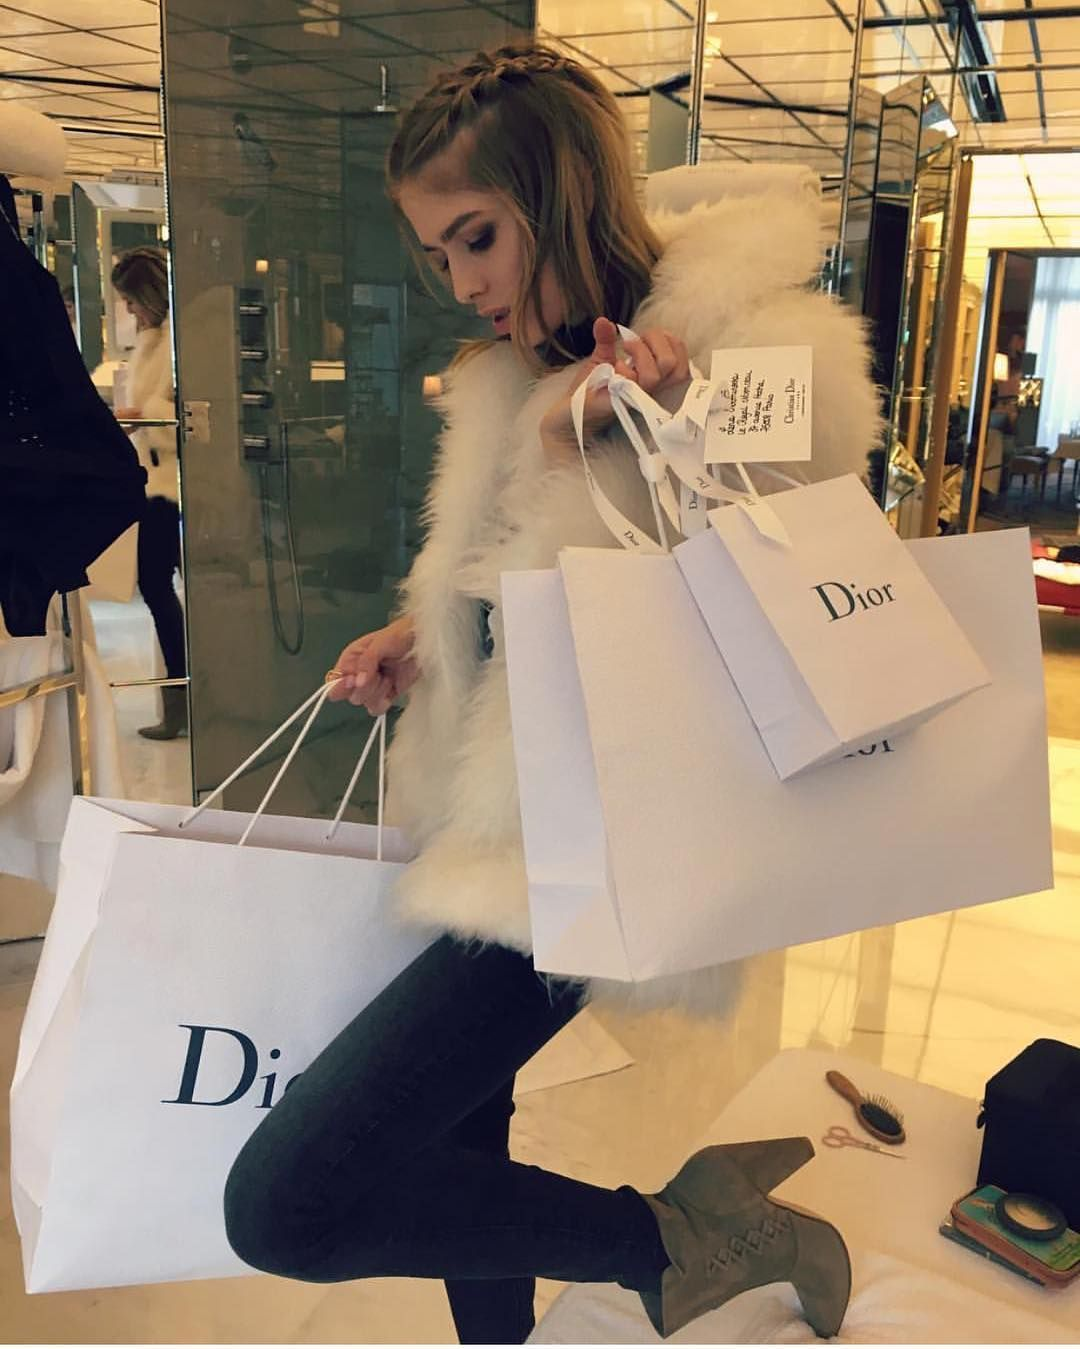 NEW STUNNING INSPIRATION - Dior shopping with Lena @chiquehappens #howtochic #ootd #outfit